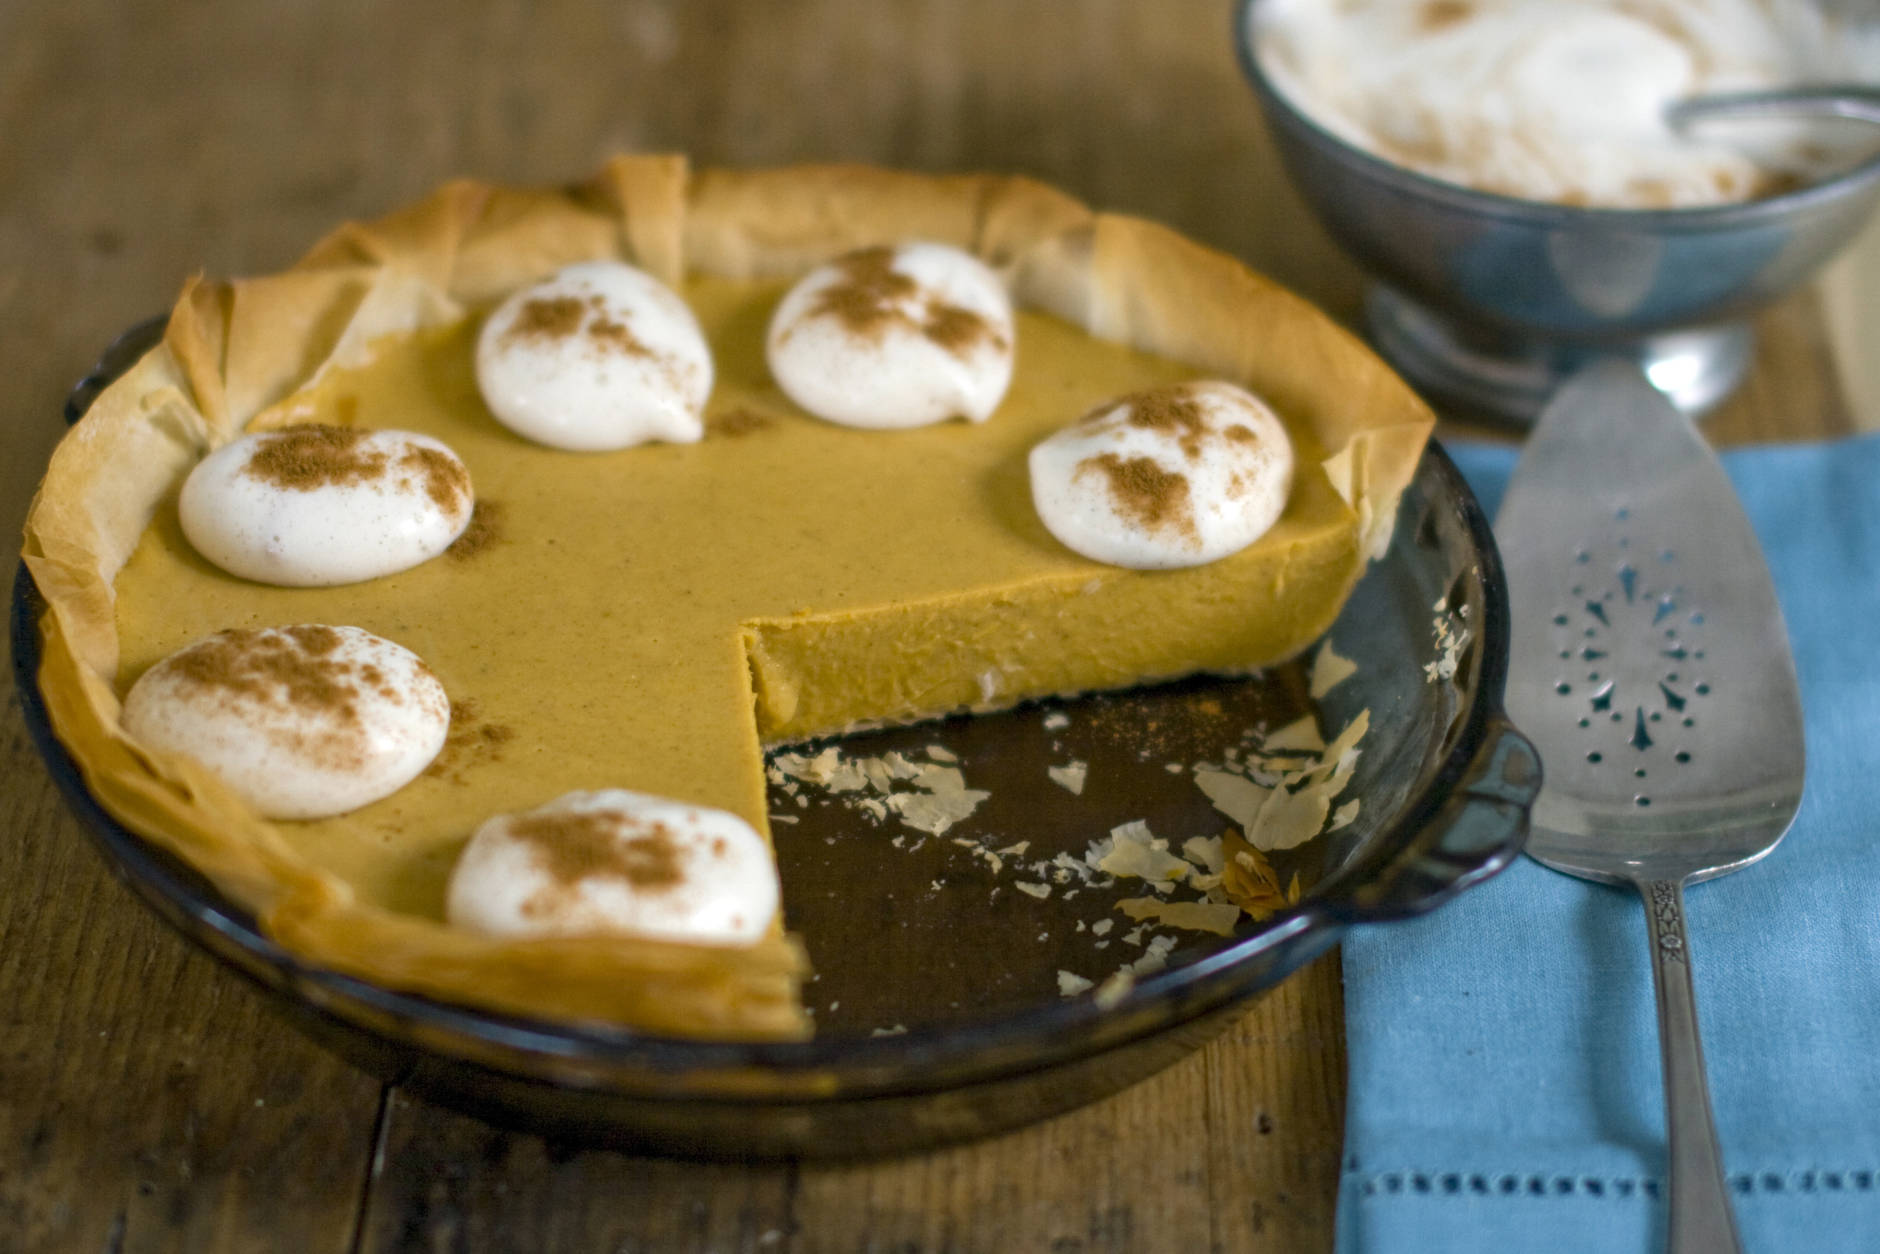 This Oct. 17, 2011 photo shows pumpkin pie with whipped cream in Concord, N.H. This recipe, from Rocco DiSpirito, can be made a day in advance of your Thanksgiving feast.    (AP Photo/Matthew Mead)